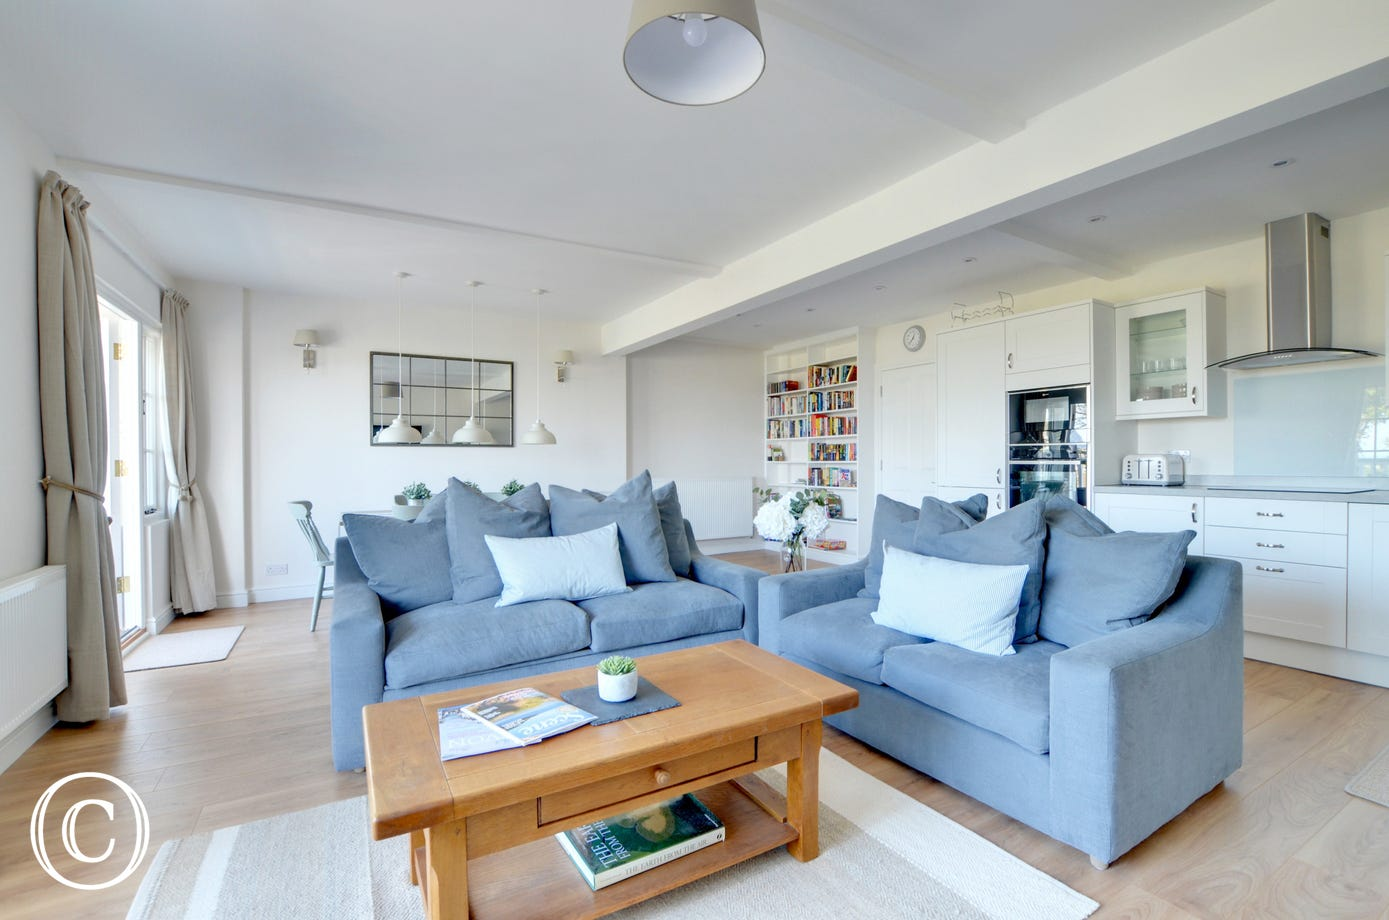 The sitting room has large comfortable sofas